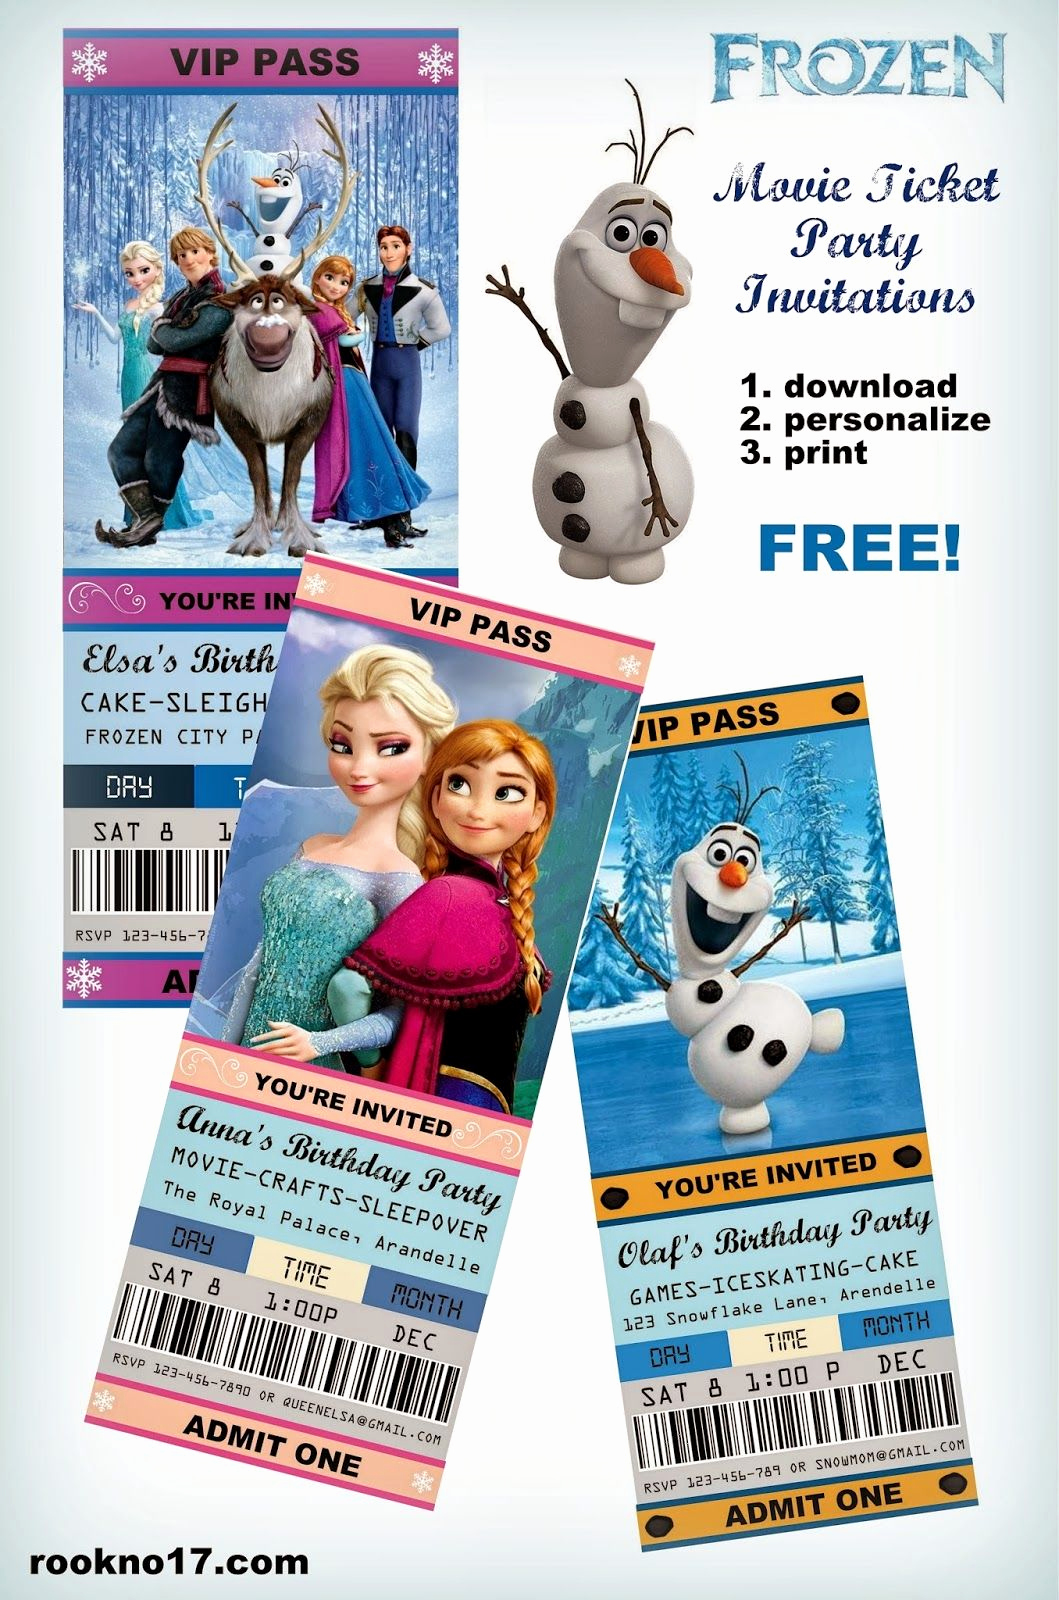 Frozen Bday Party Invitations Inspirational Free Frozen Invitations On Pinterest